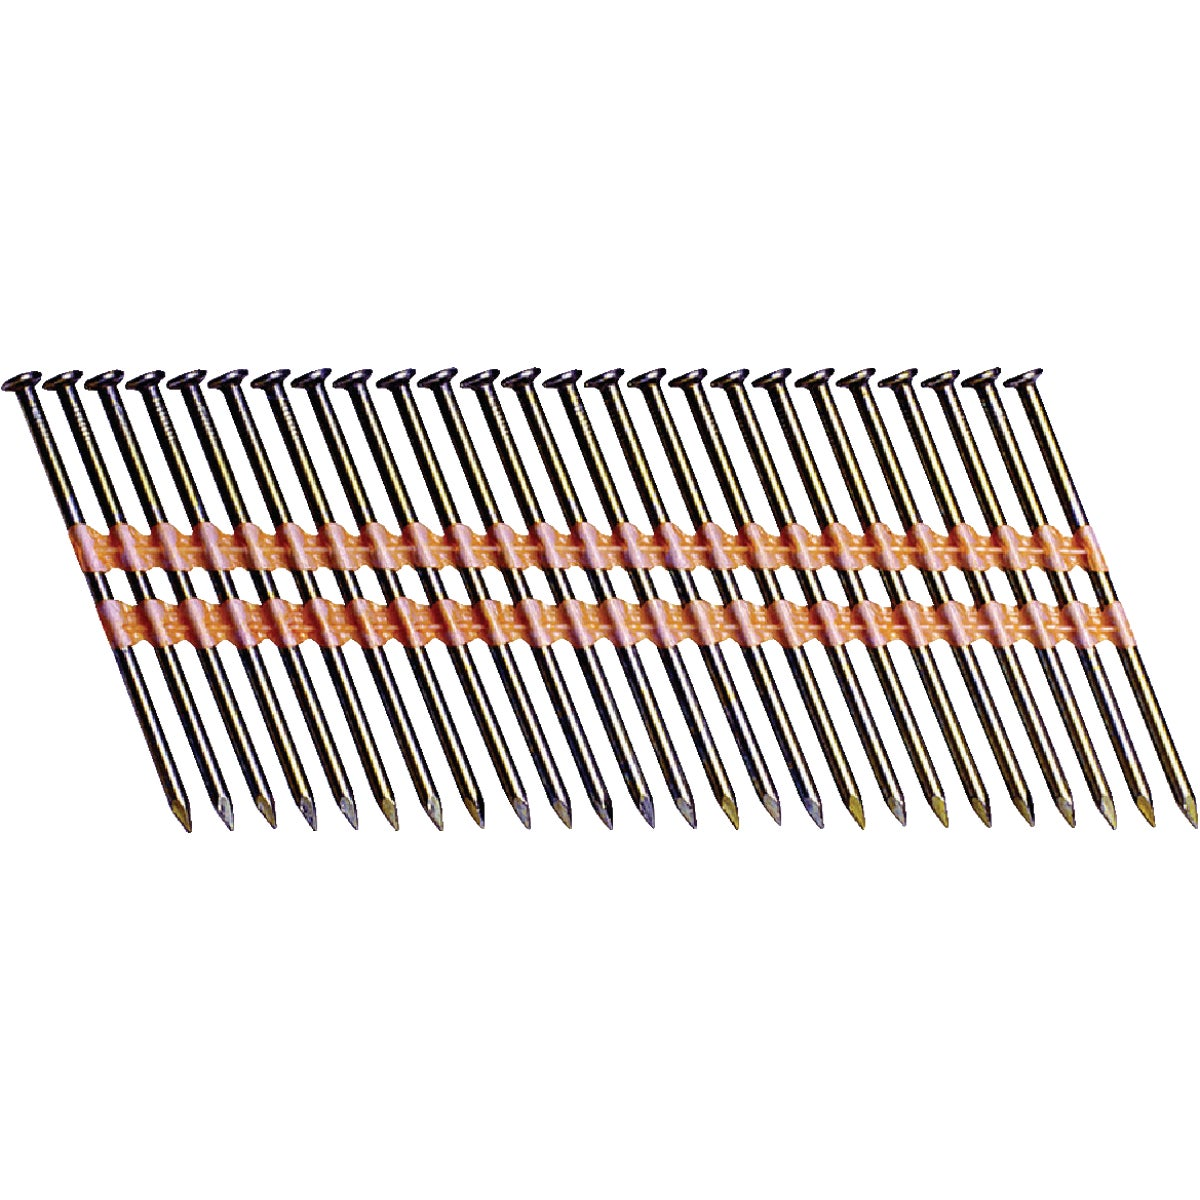 2-1/2X.131 STICK NAIL - GR212131HG by Prime Source Pneumat